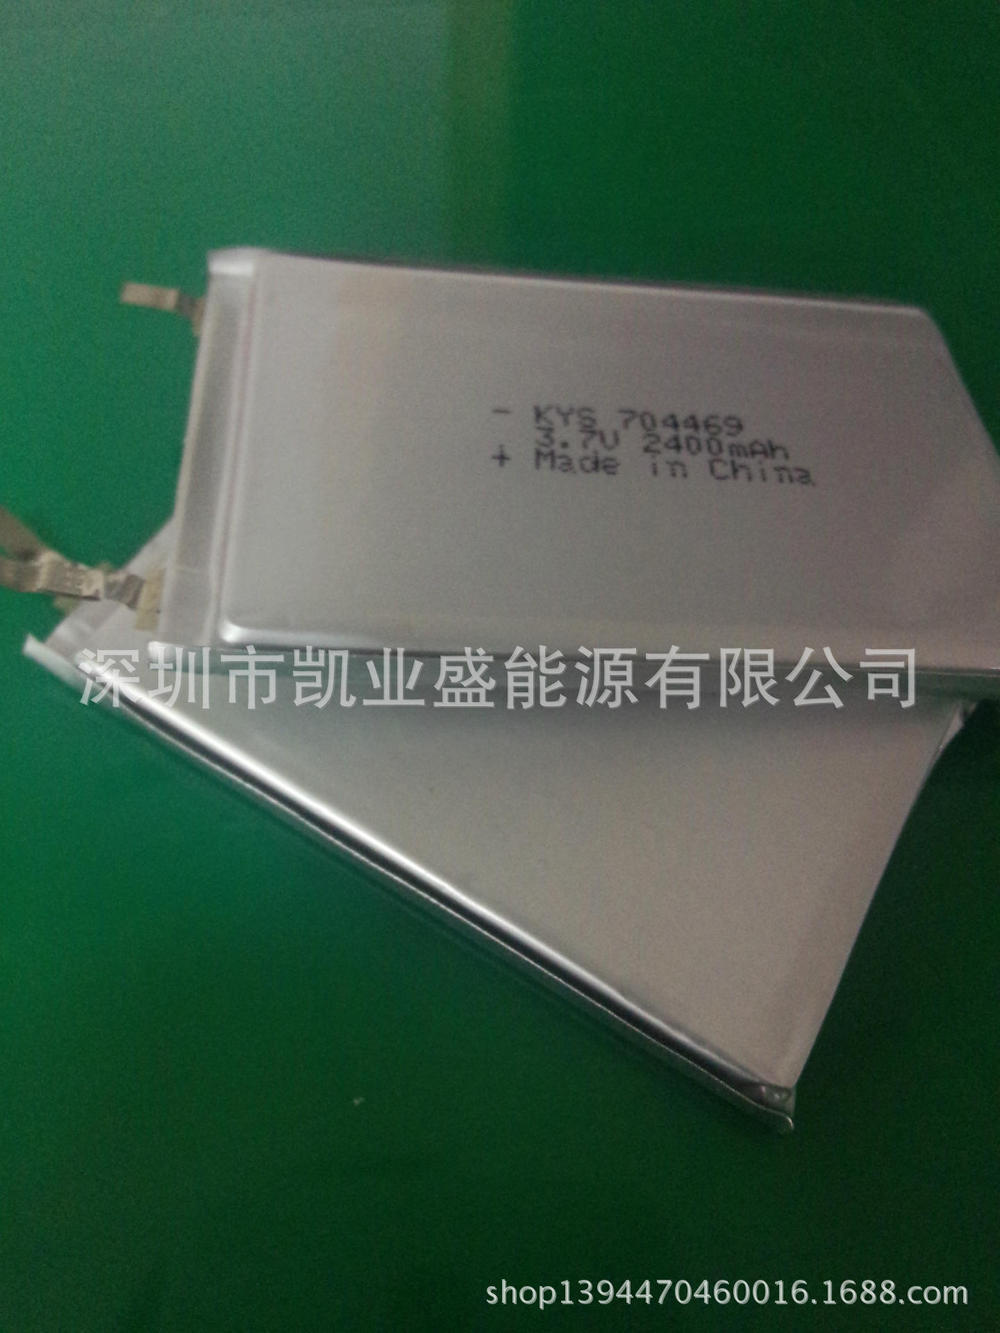 Factory direct phone / backup power / electric tools dedicated lithium polymer battery 704469074469(China (Mainland))